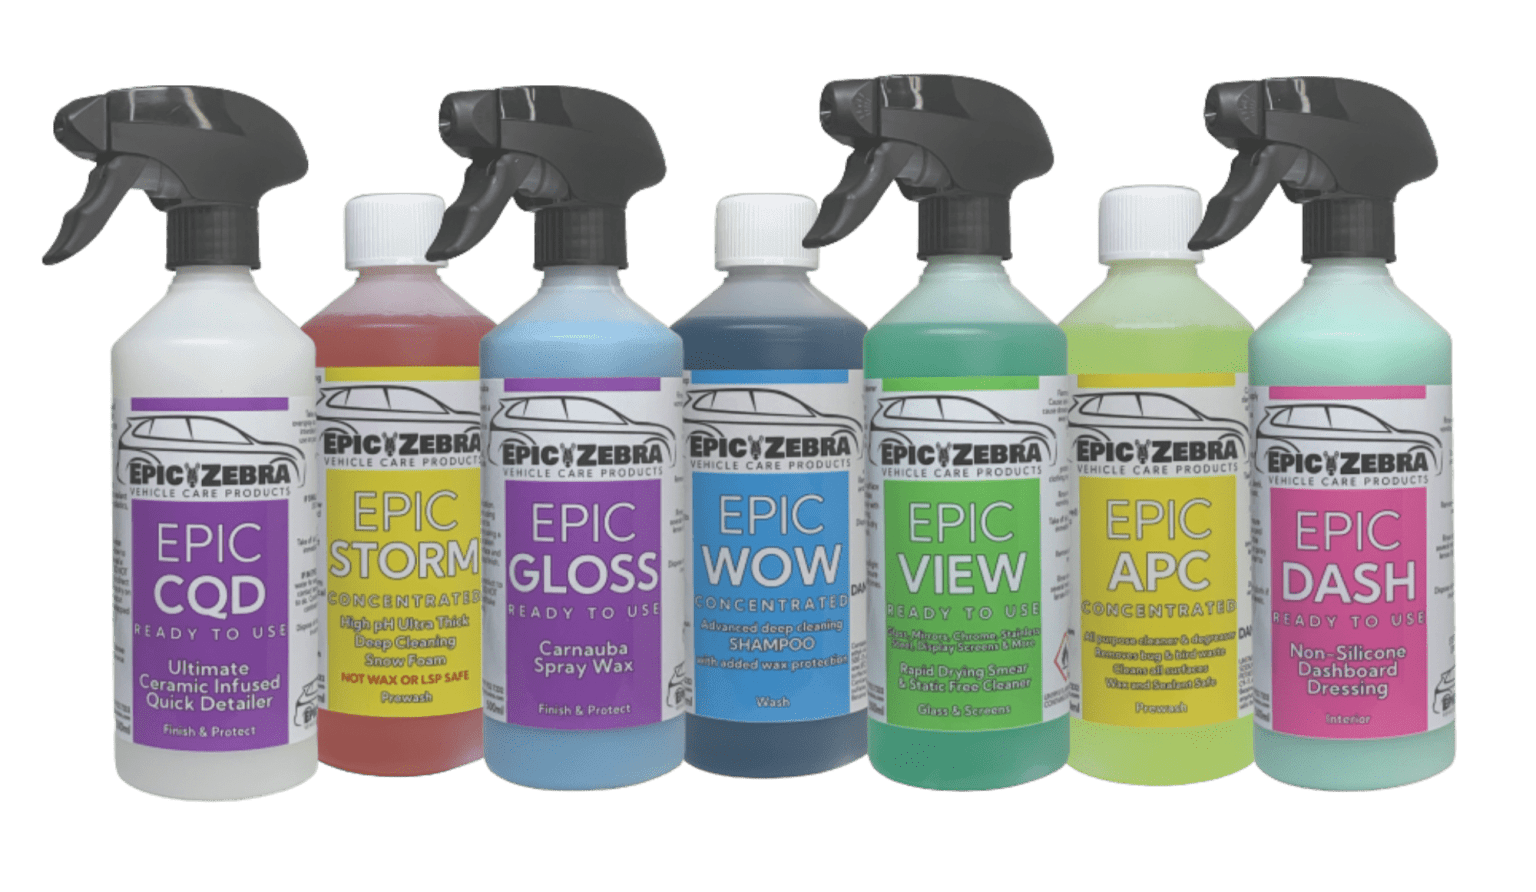 EpicZebra Vehicle Care Products Detailing Valeting example products